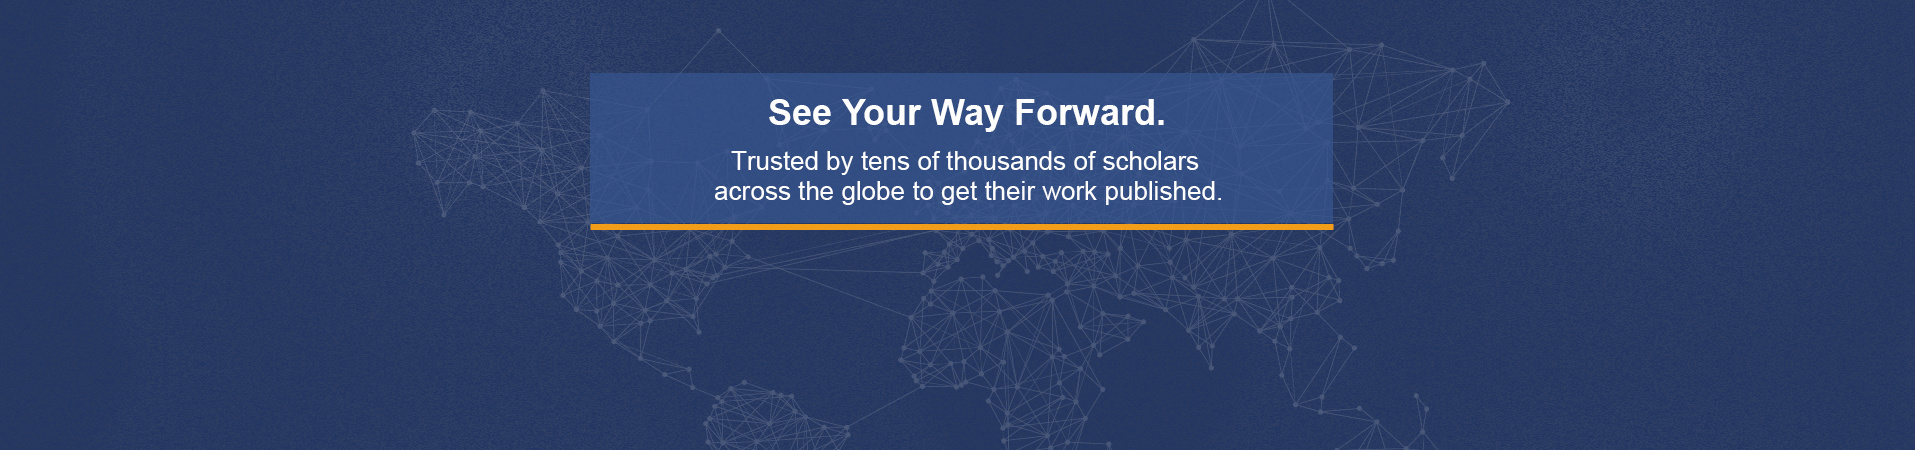 see your way forward, trusted by tens of thousands of scholars across the globe to get their work published